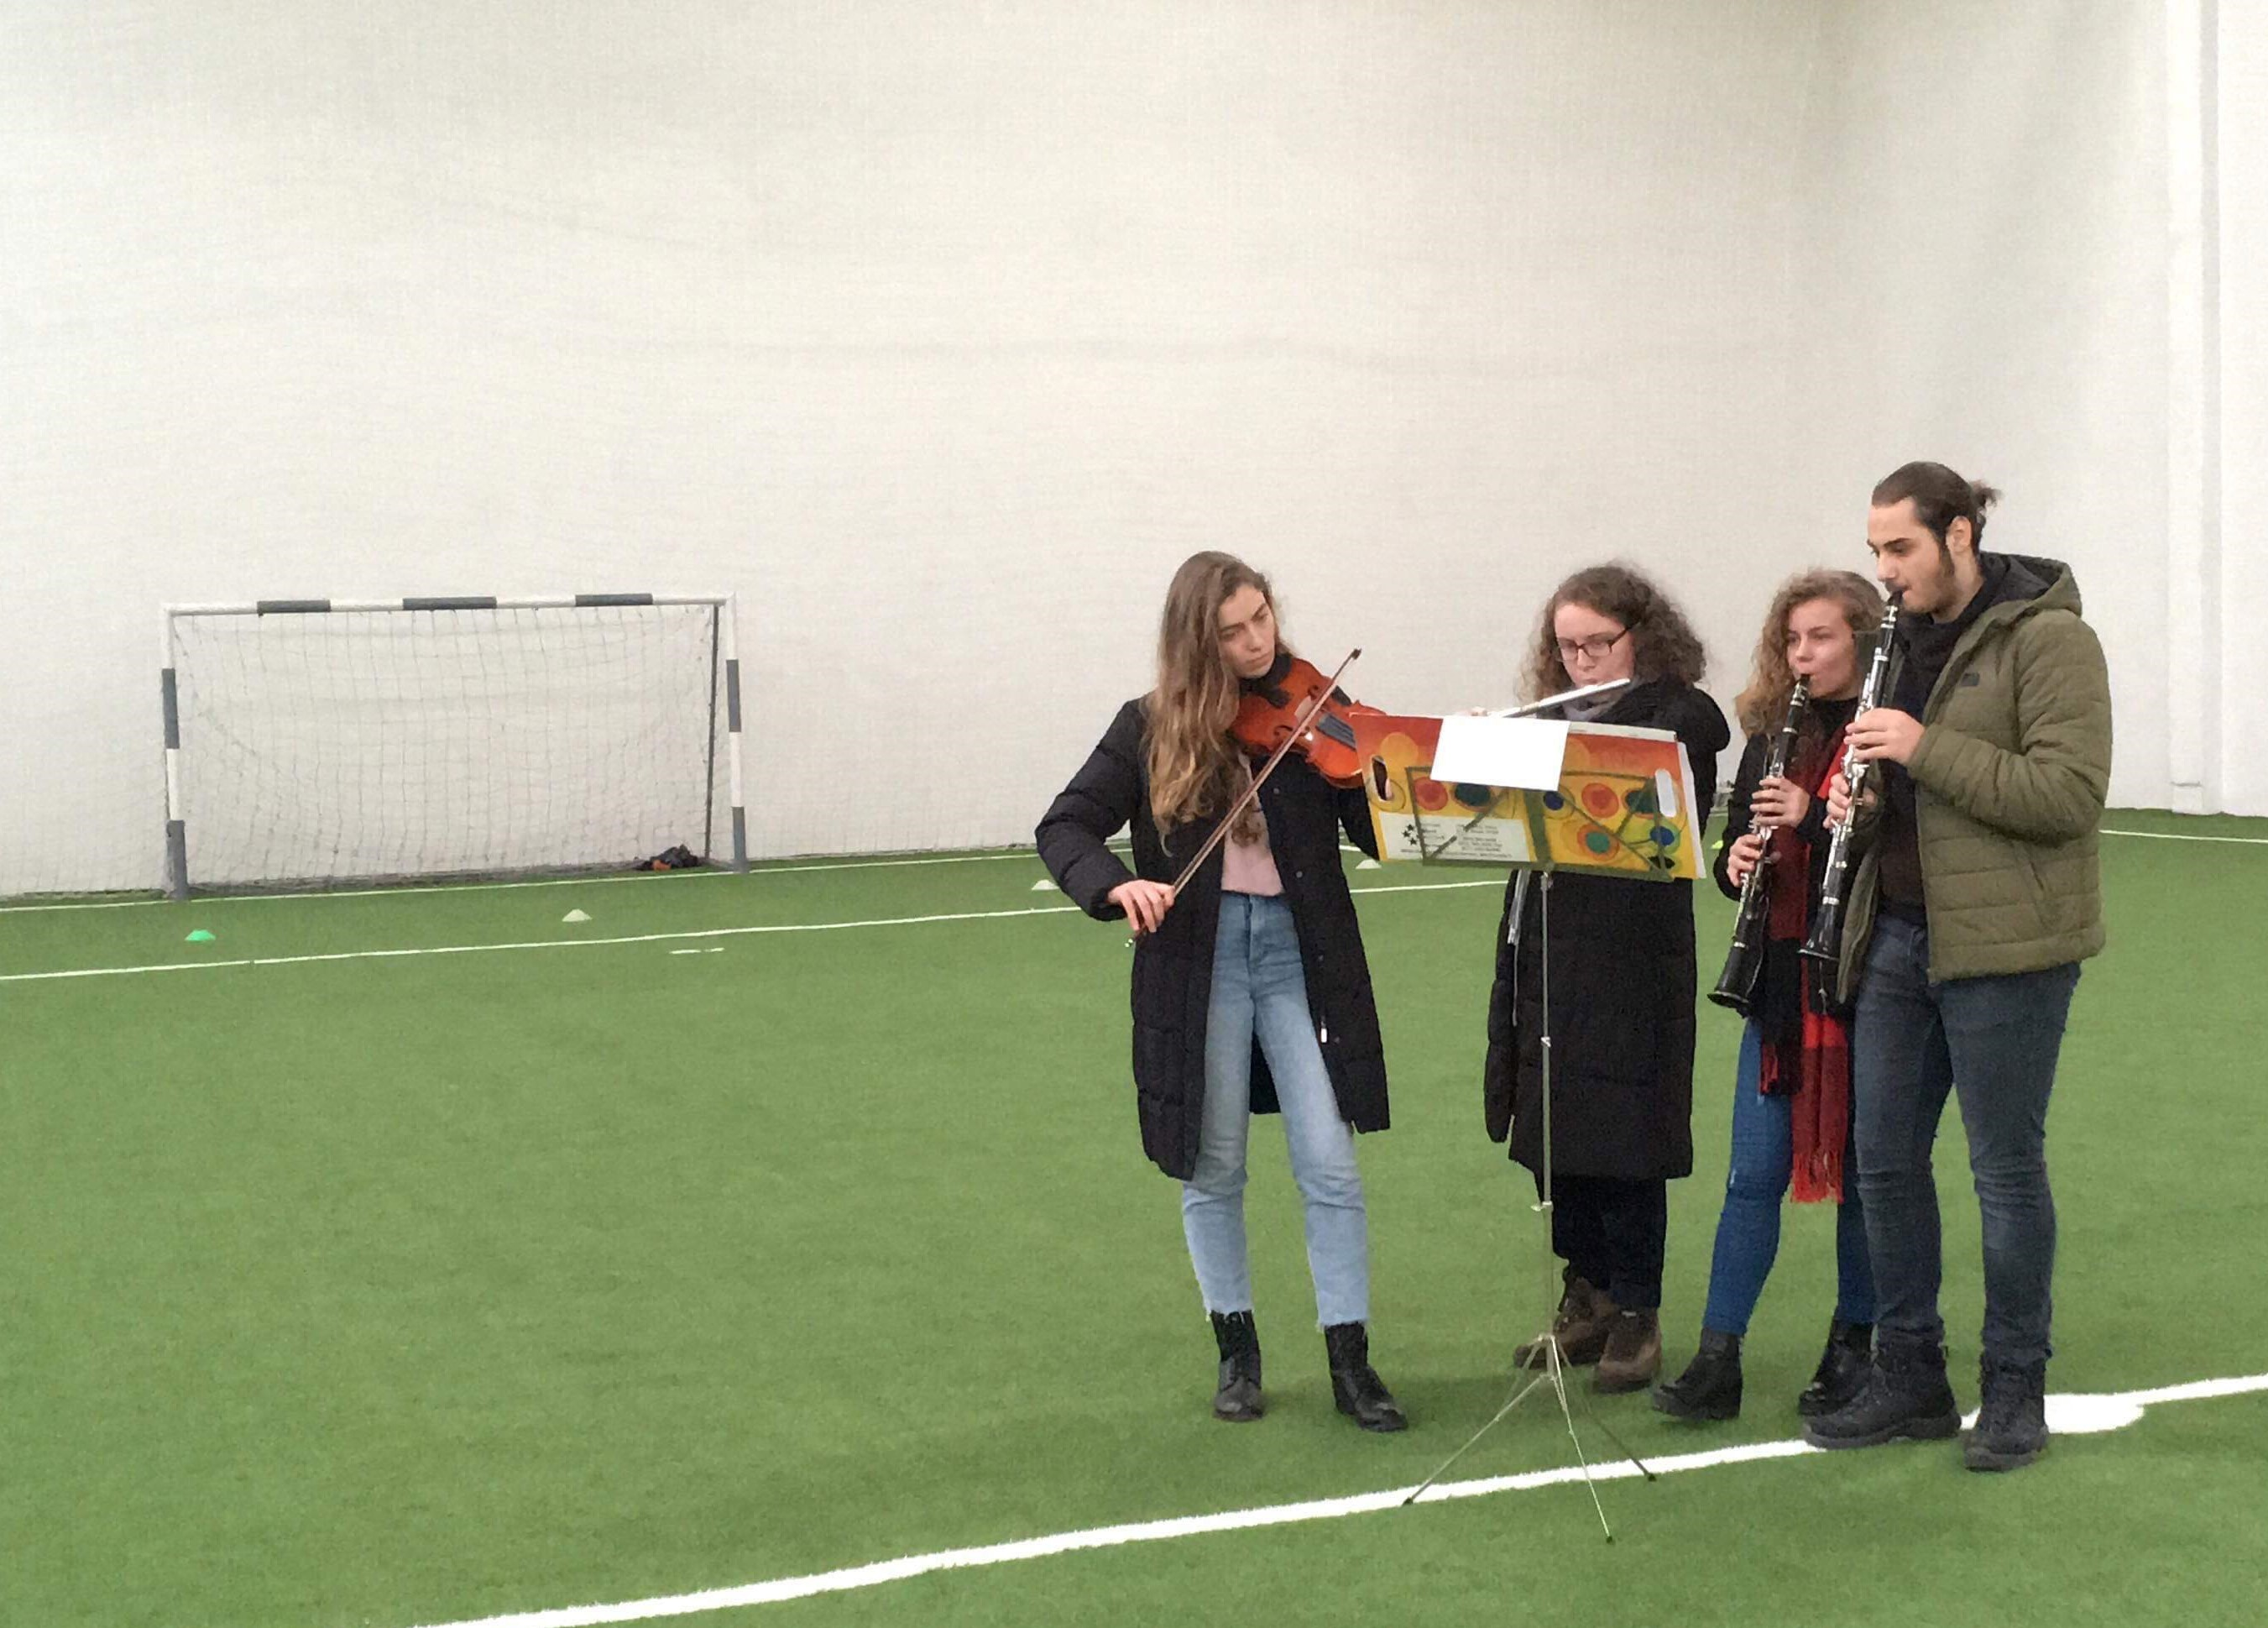 Kosova Behar Bunjaku And Other Students Playing Their Instruments During The Halftime